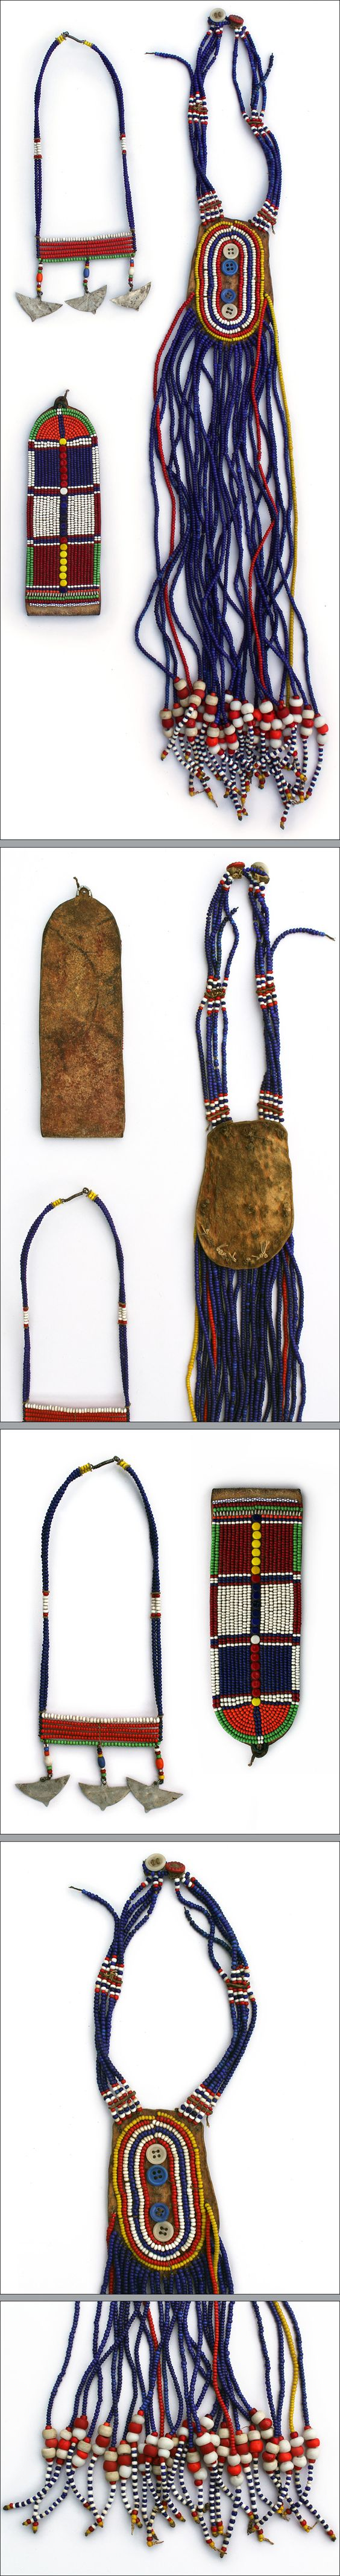 """Traditional jewelry Maasai, Kenya and Oromo, Ethiopia. """"Beadwork became increasingly popular after 1900 when the Maasai began trading with ..."""